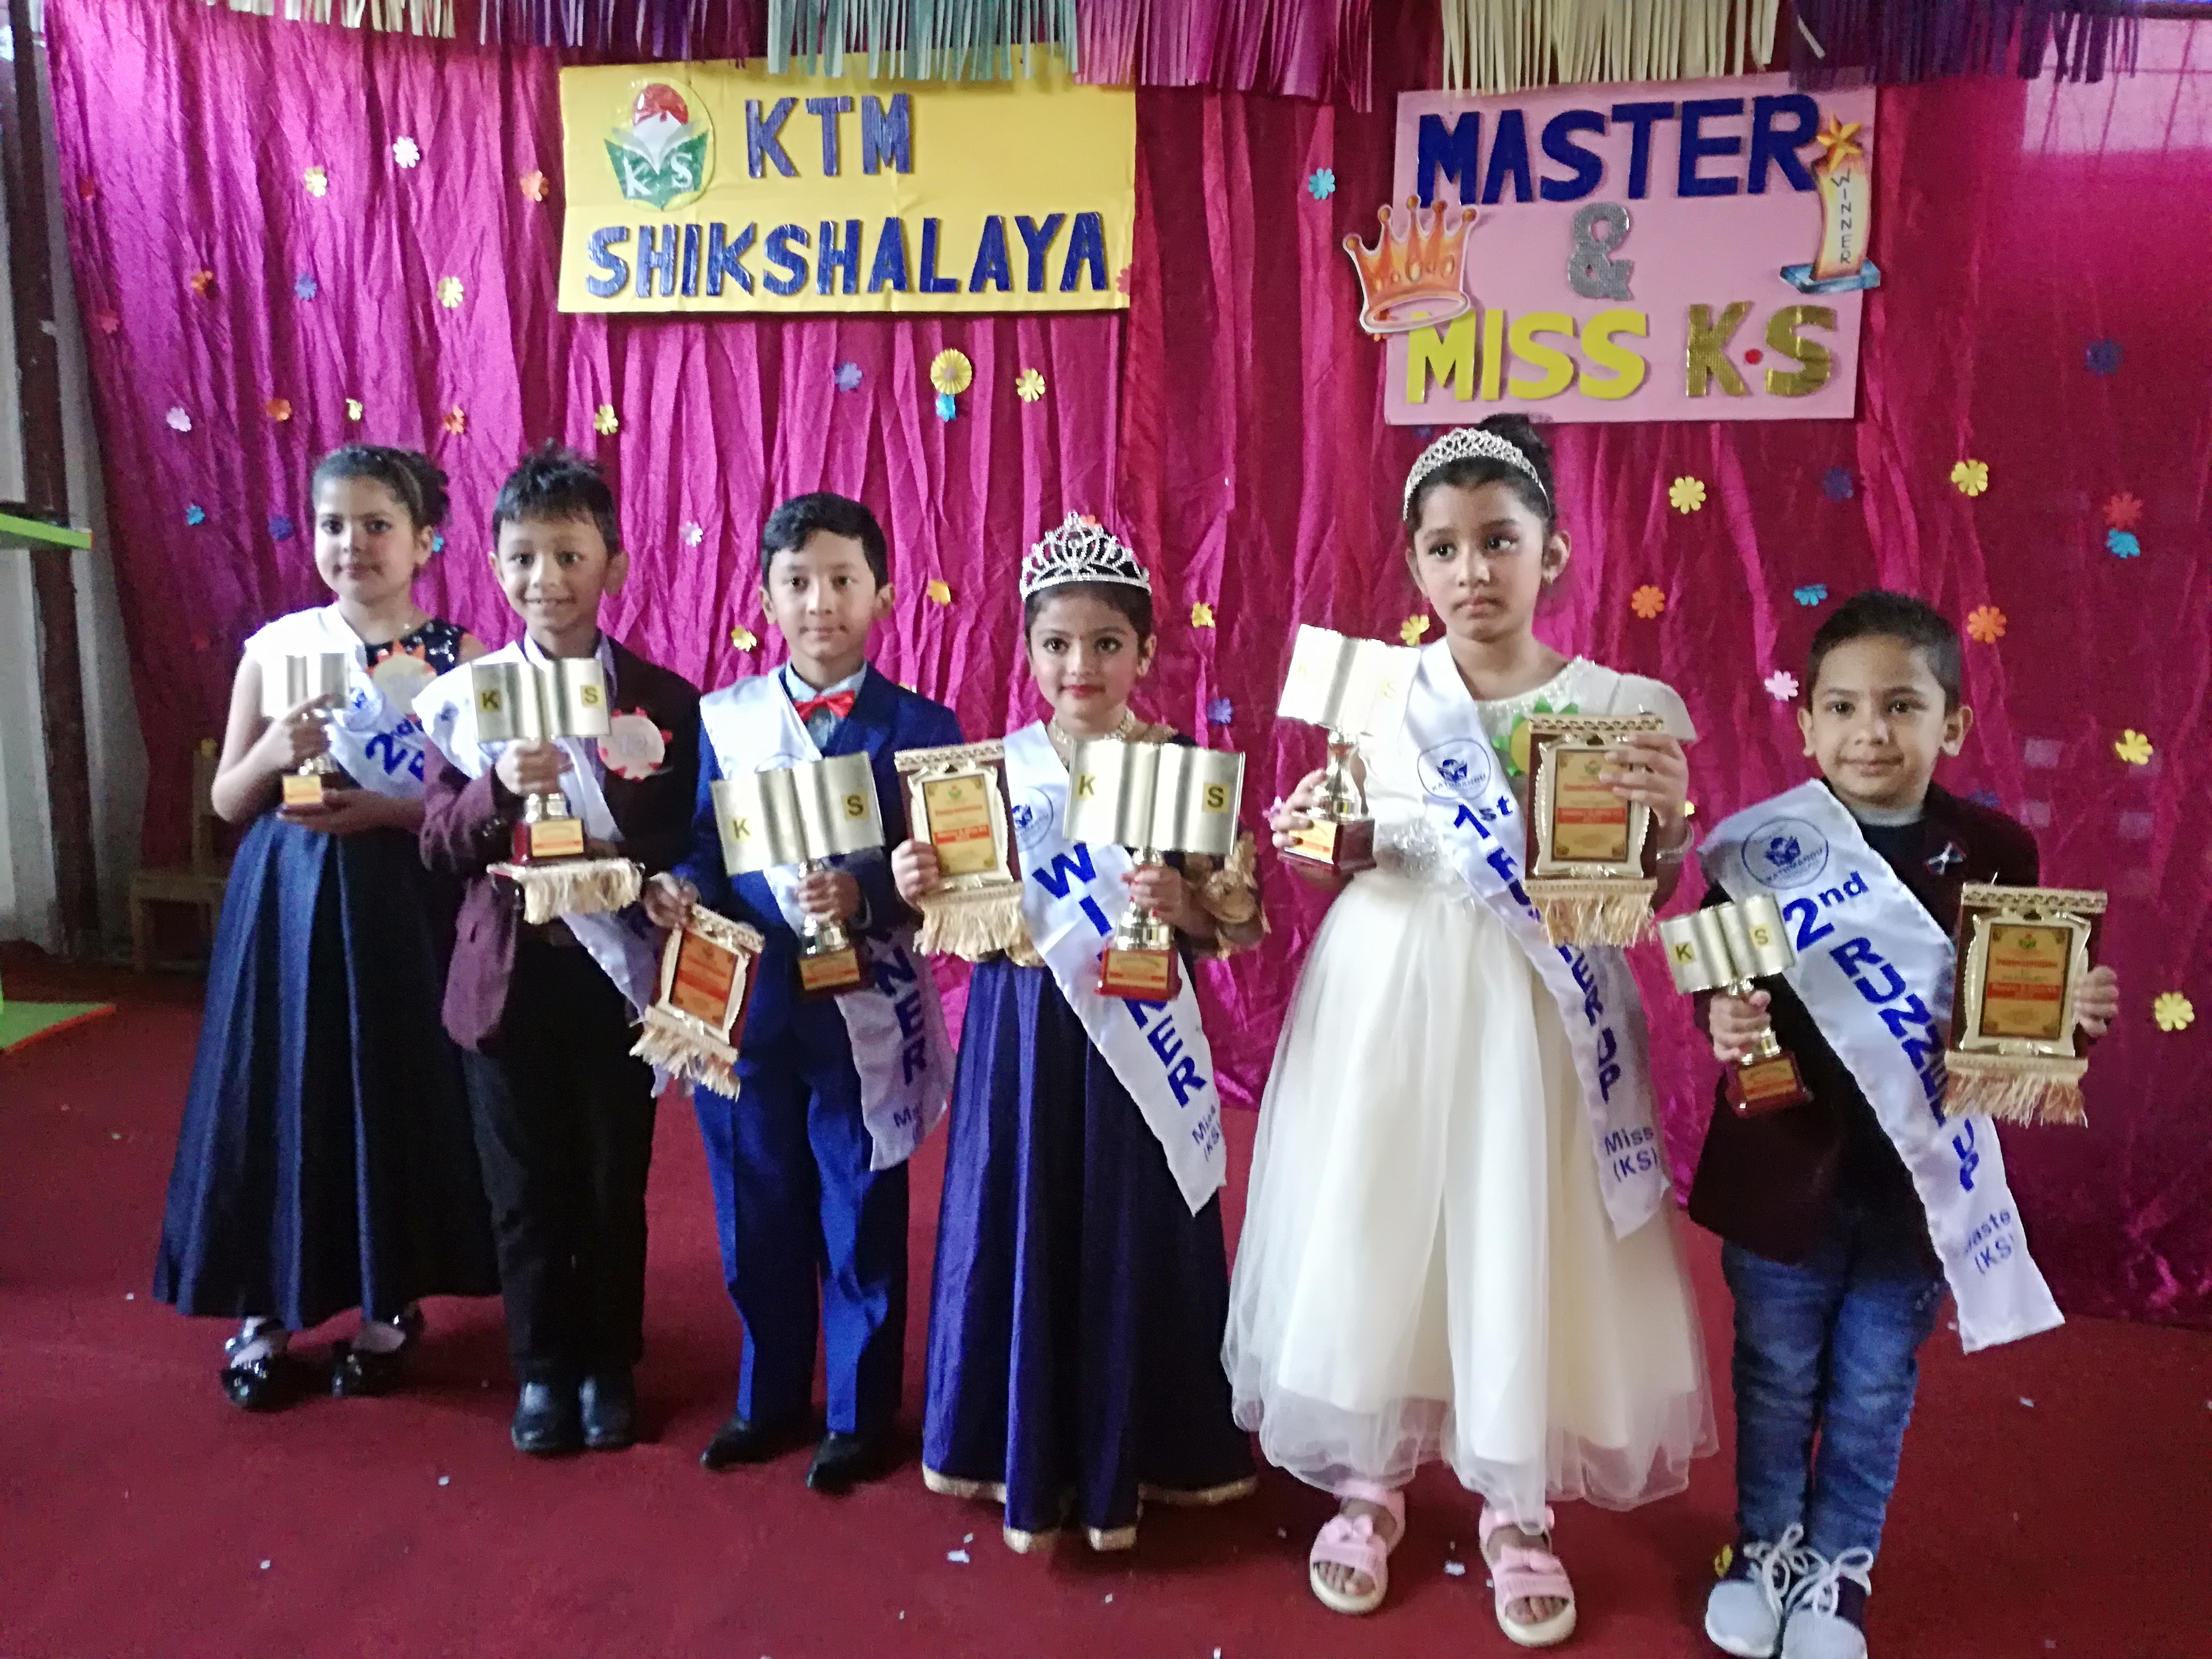 Winners of Master and Miss K.S.